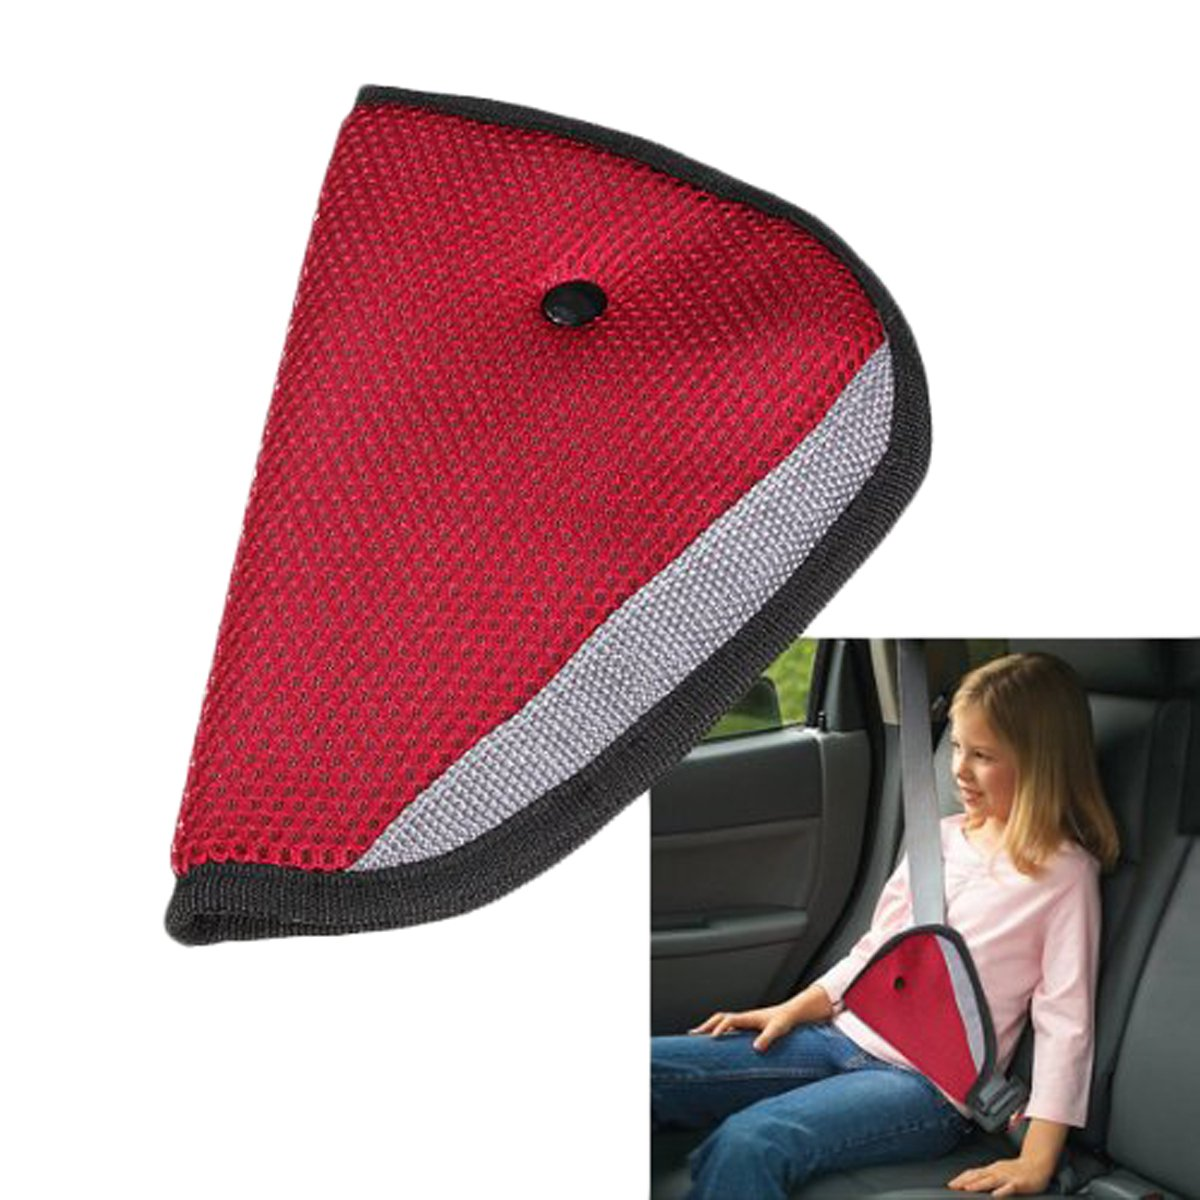 Edtoy Kids Car Seatbelt Adjuster Child Safety Cover Harness Pad Seat Belt Strap Adapters (Red)